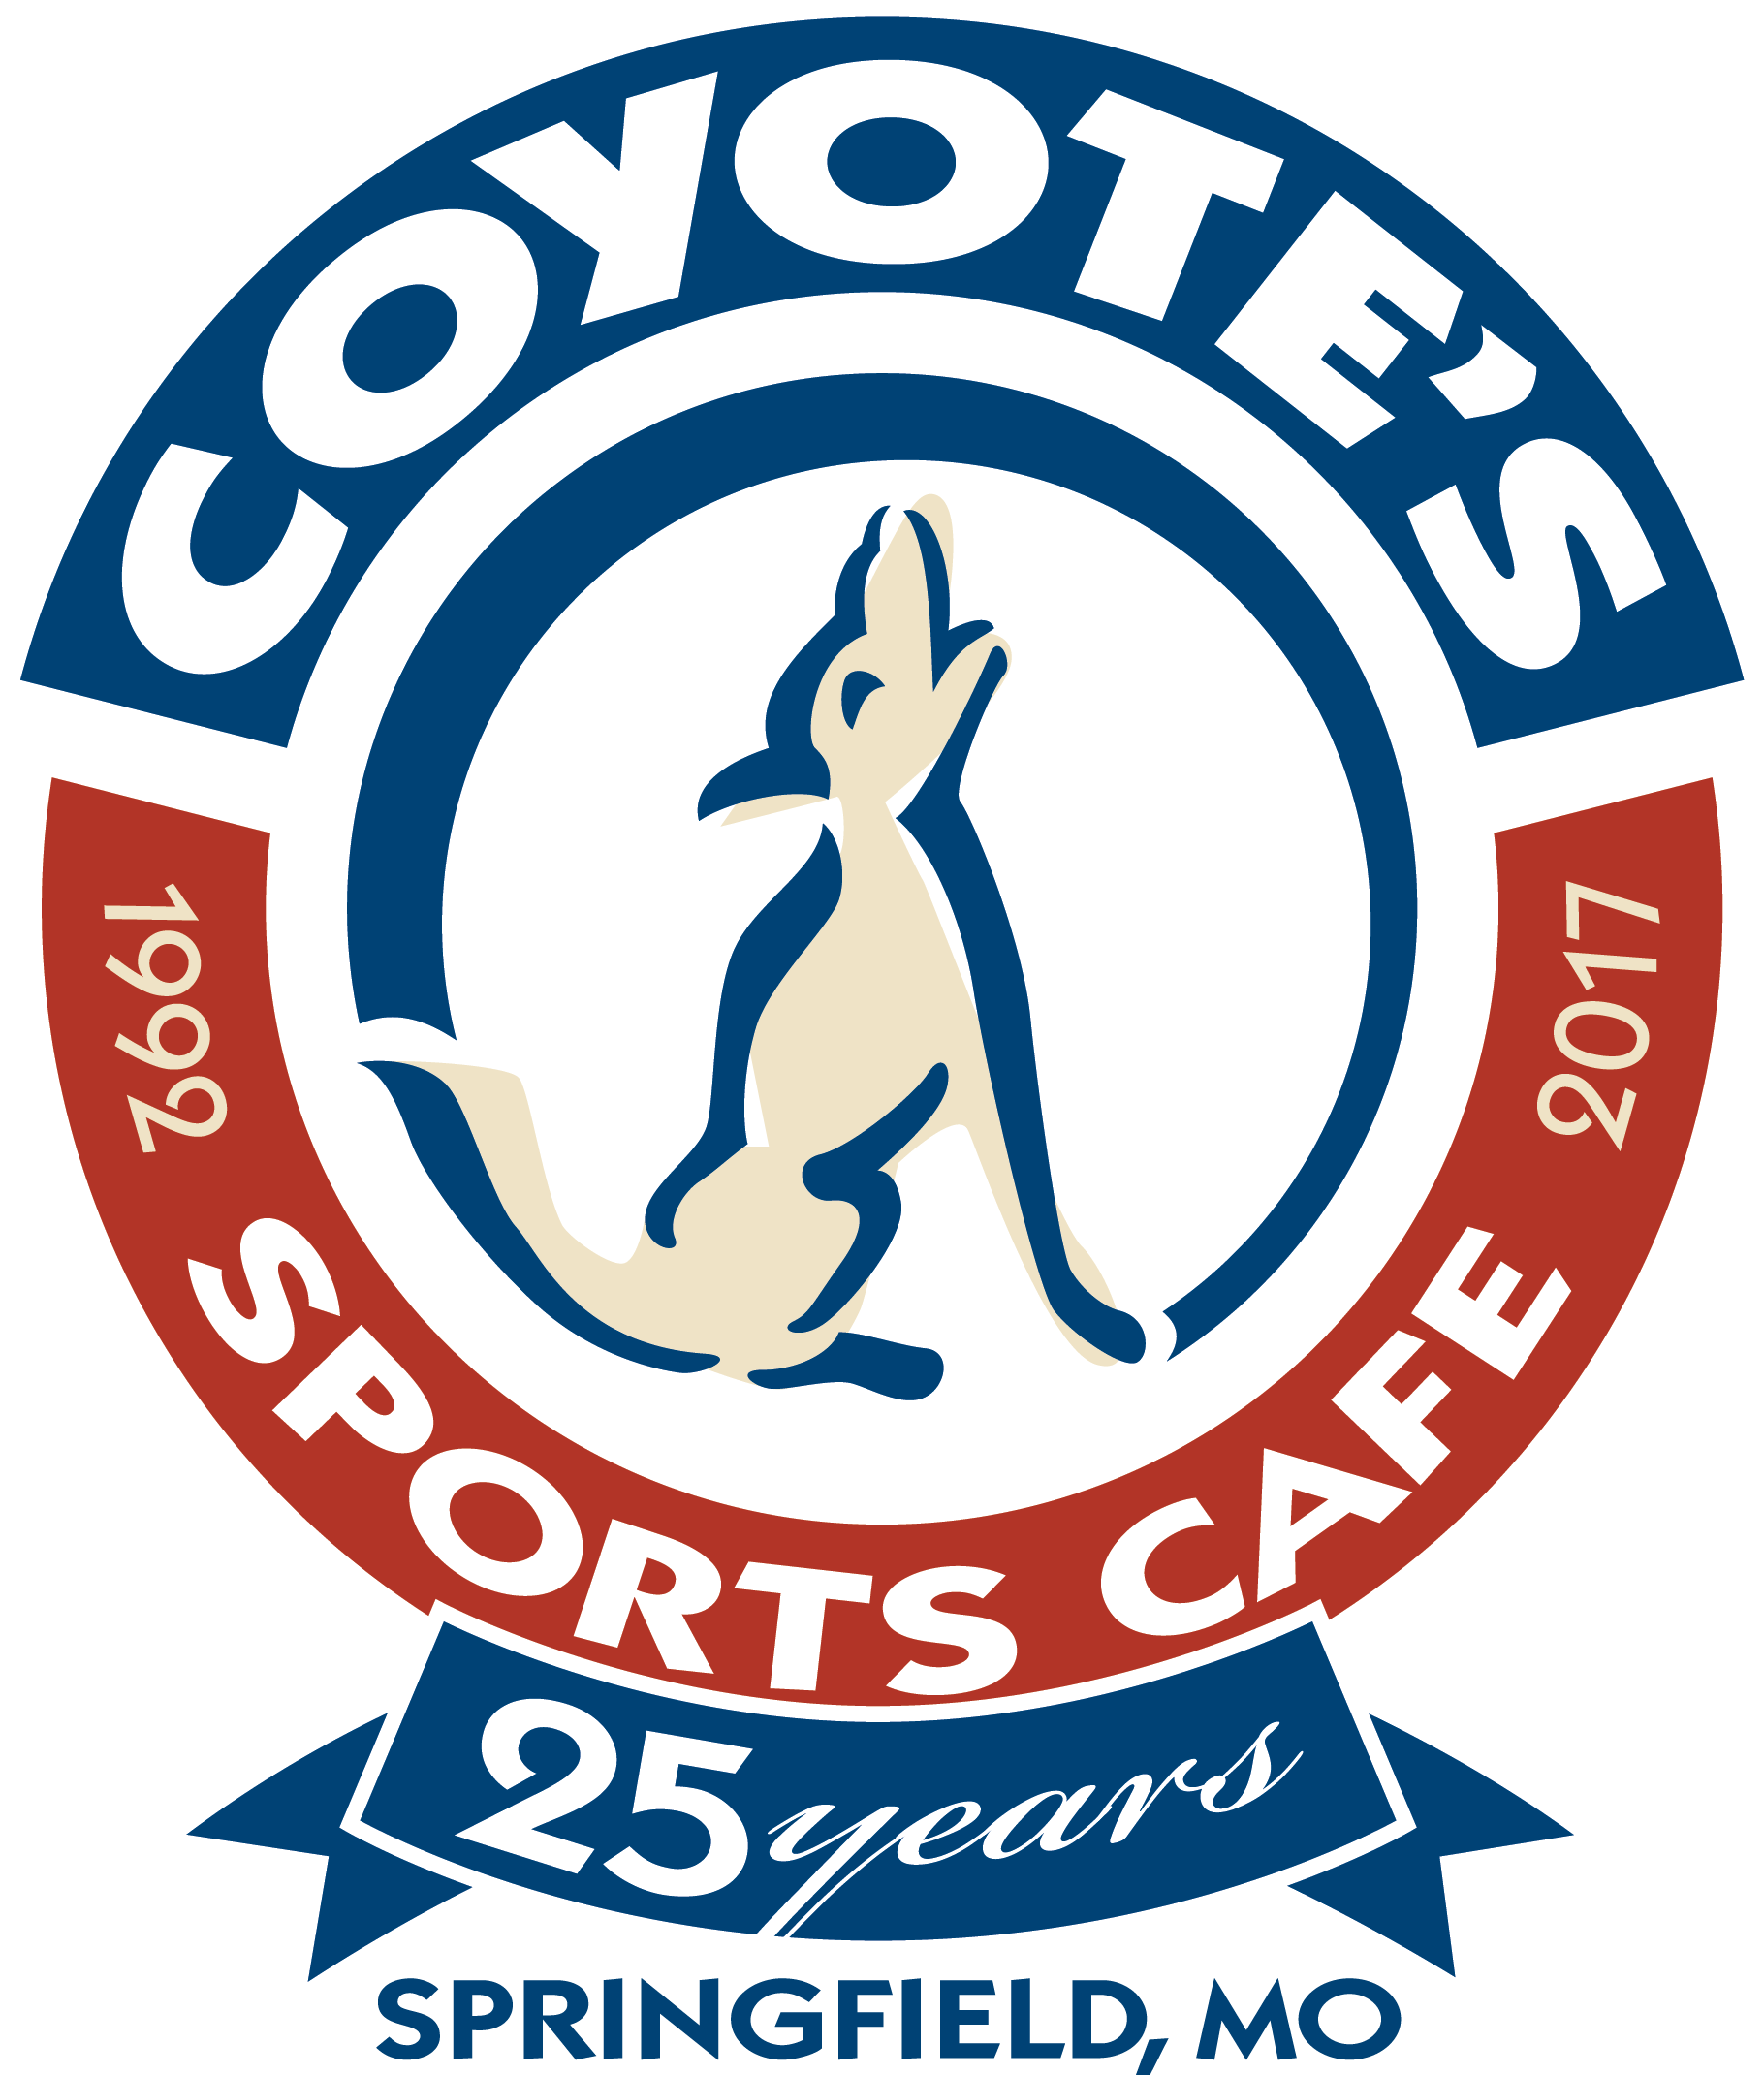 Coyote's Adobe Cafe